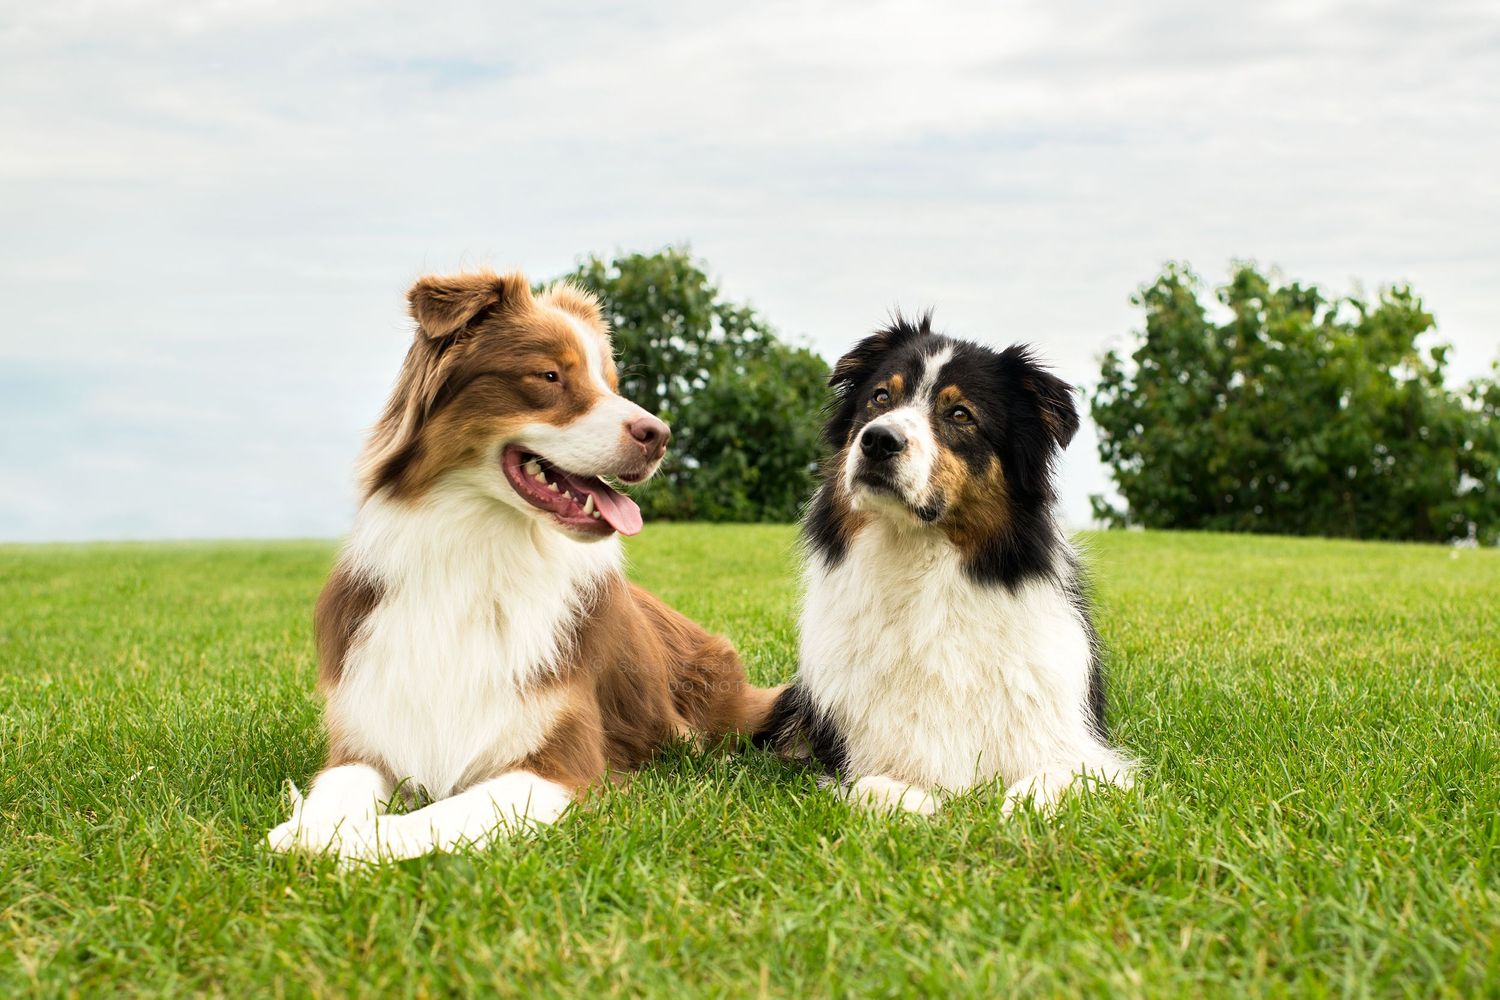 2 Australian shepherd dogs lying in the grass